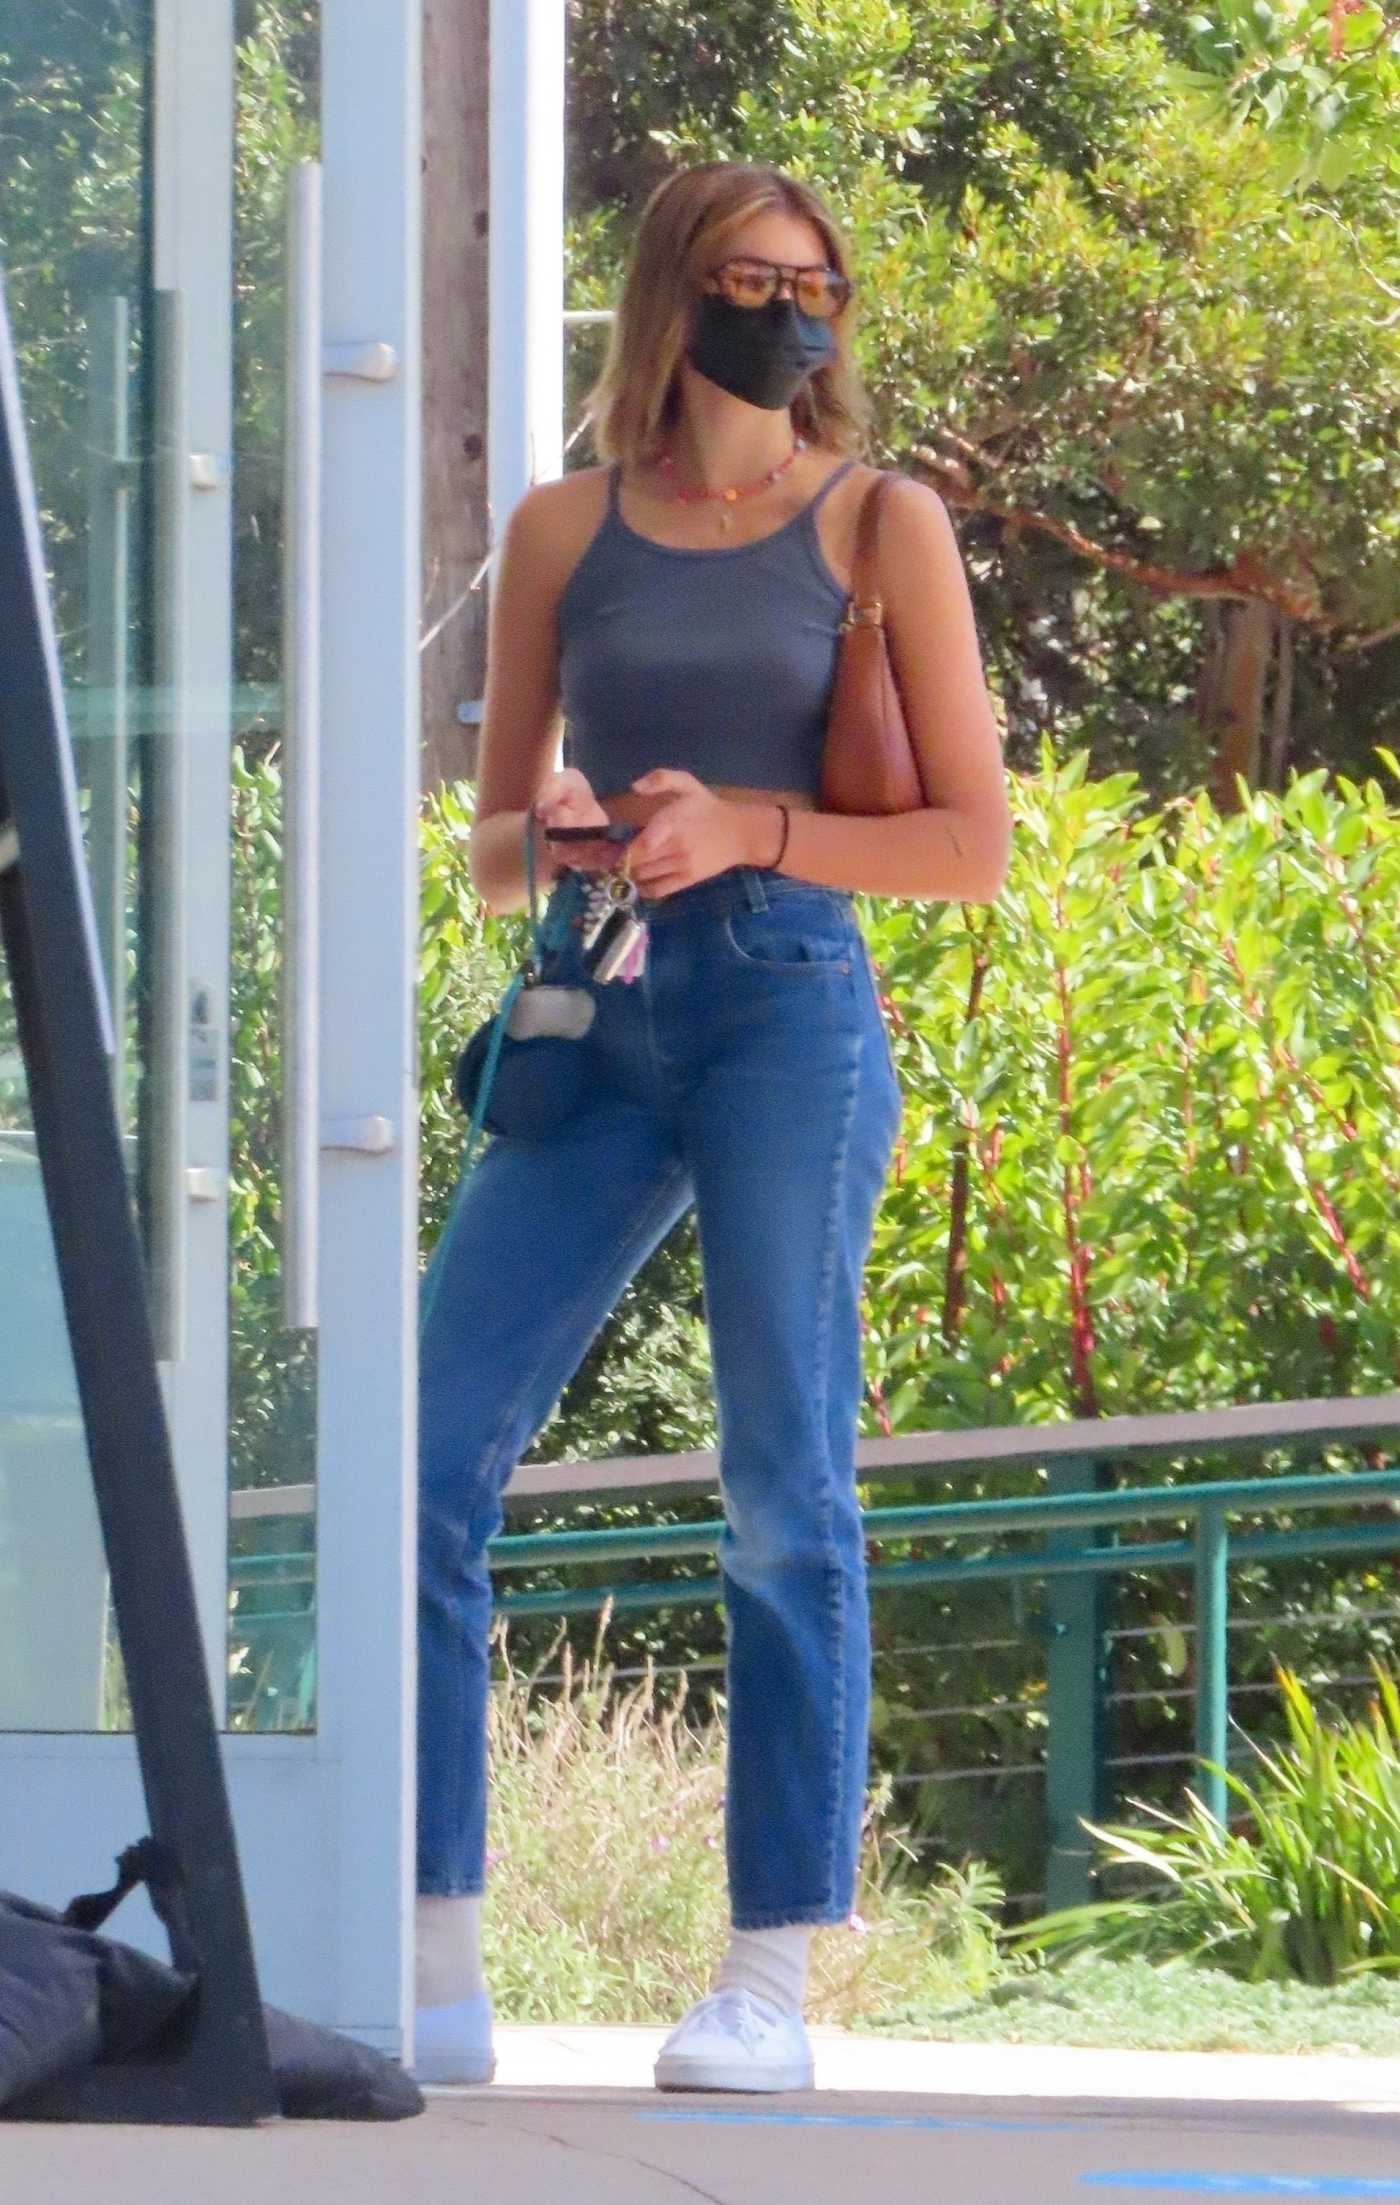 Kaia Gerber in a Grey Top Goes on a Coffee Run with Her Dog in Malibu 02/23/2021